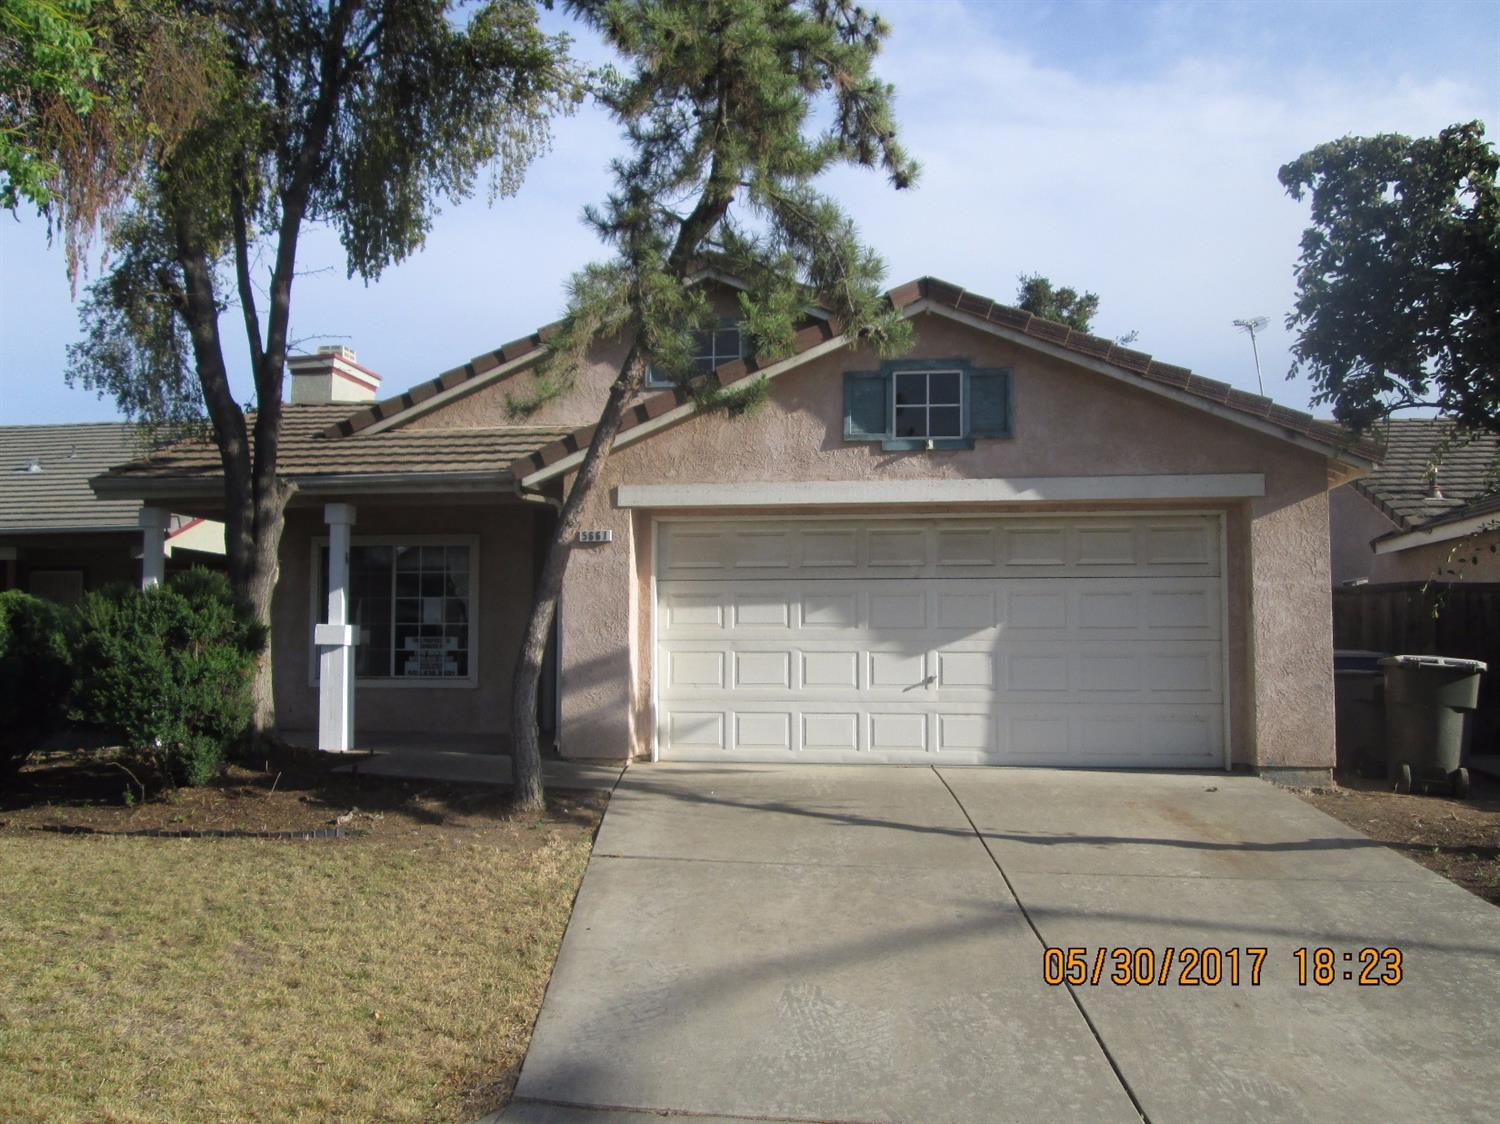 4 bed / 2 baths Home in Fresno for $169,900